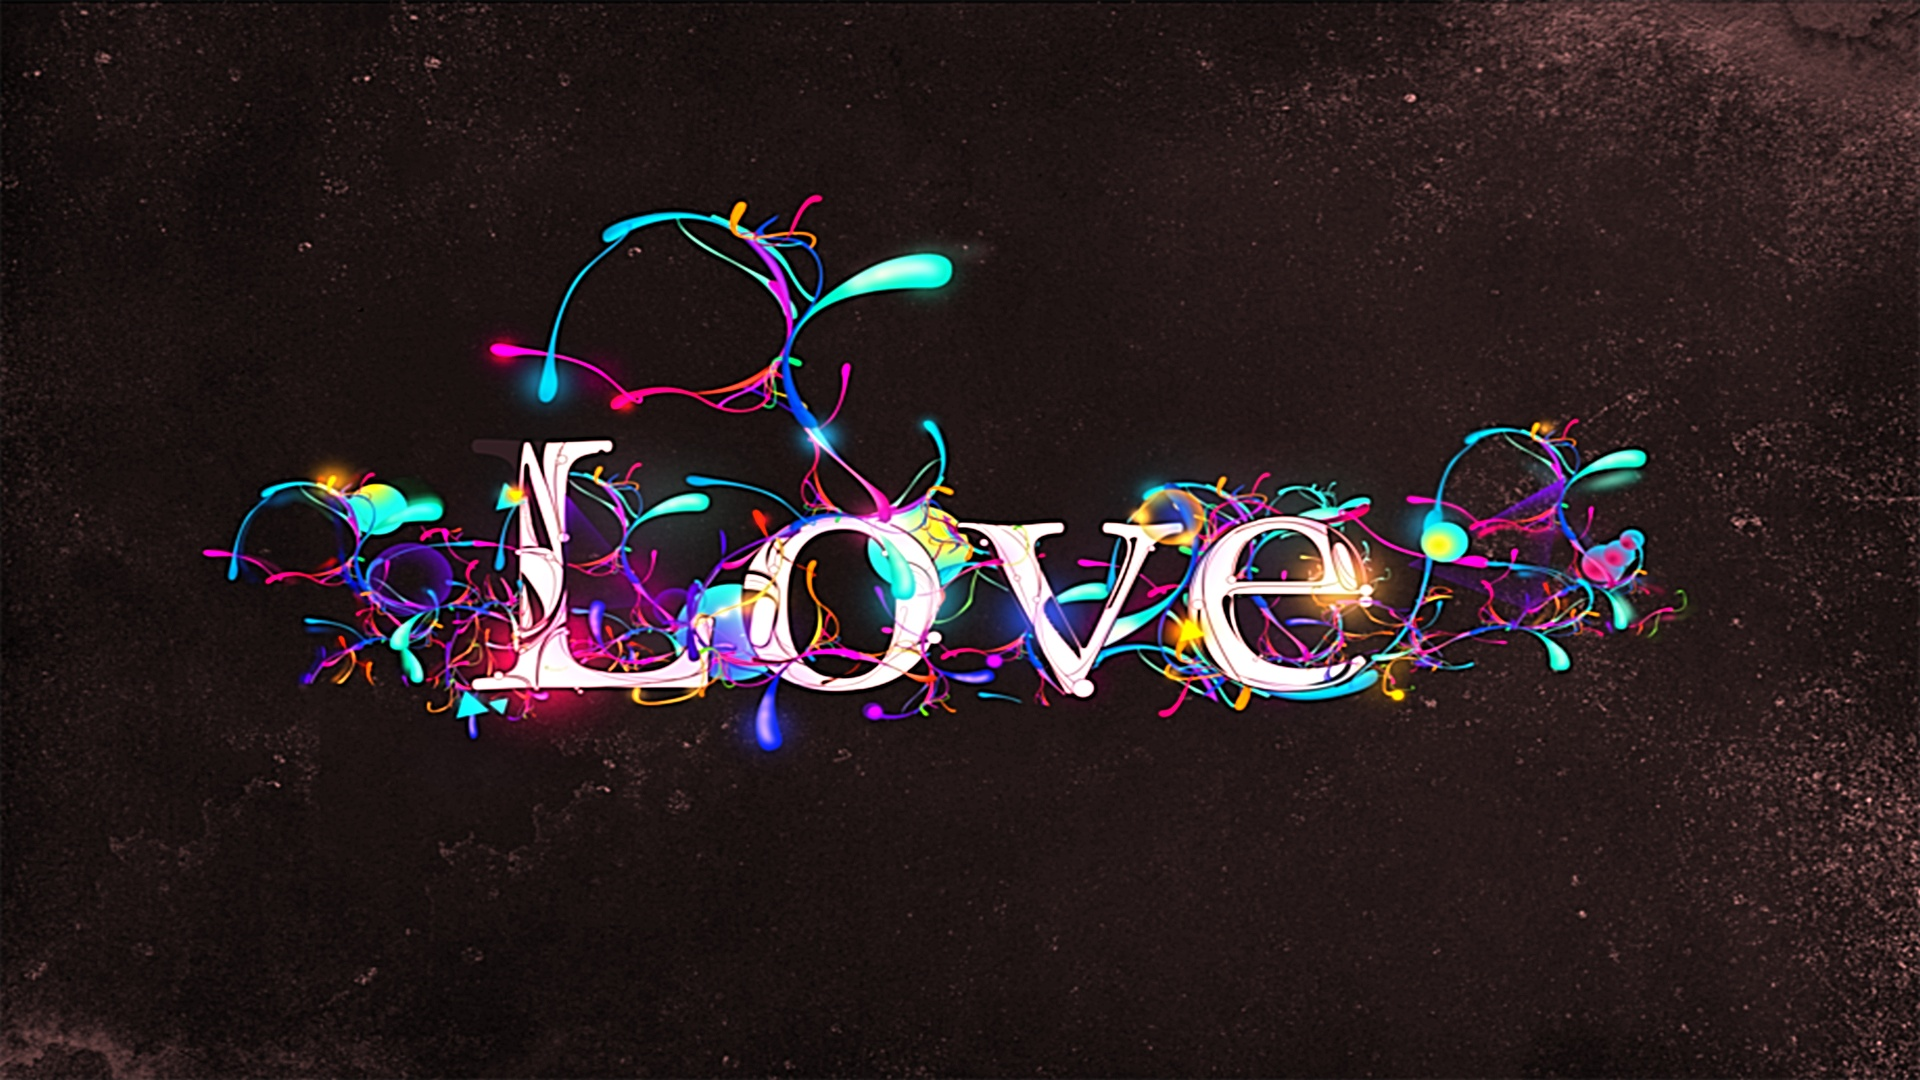 Tuxedo Wallpaper Hd Paint Drops On Love Abstract